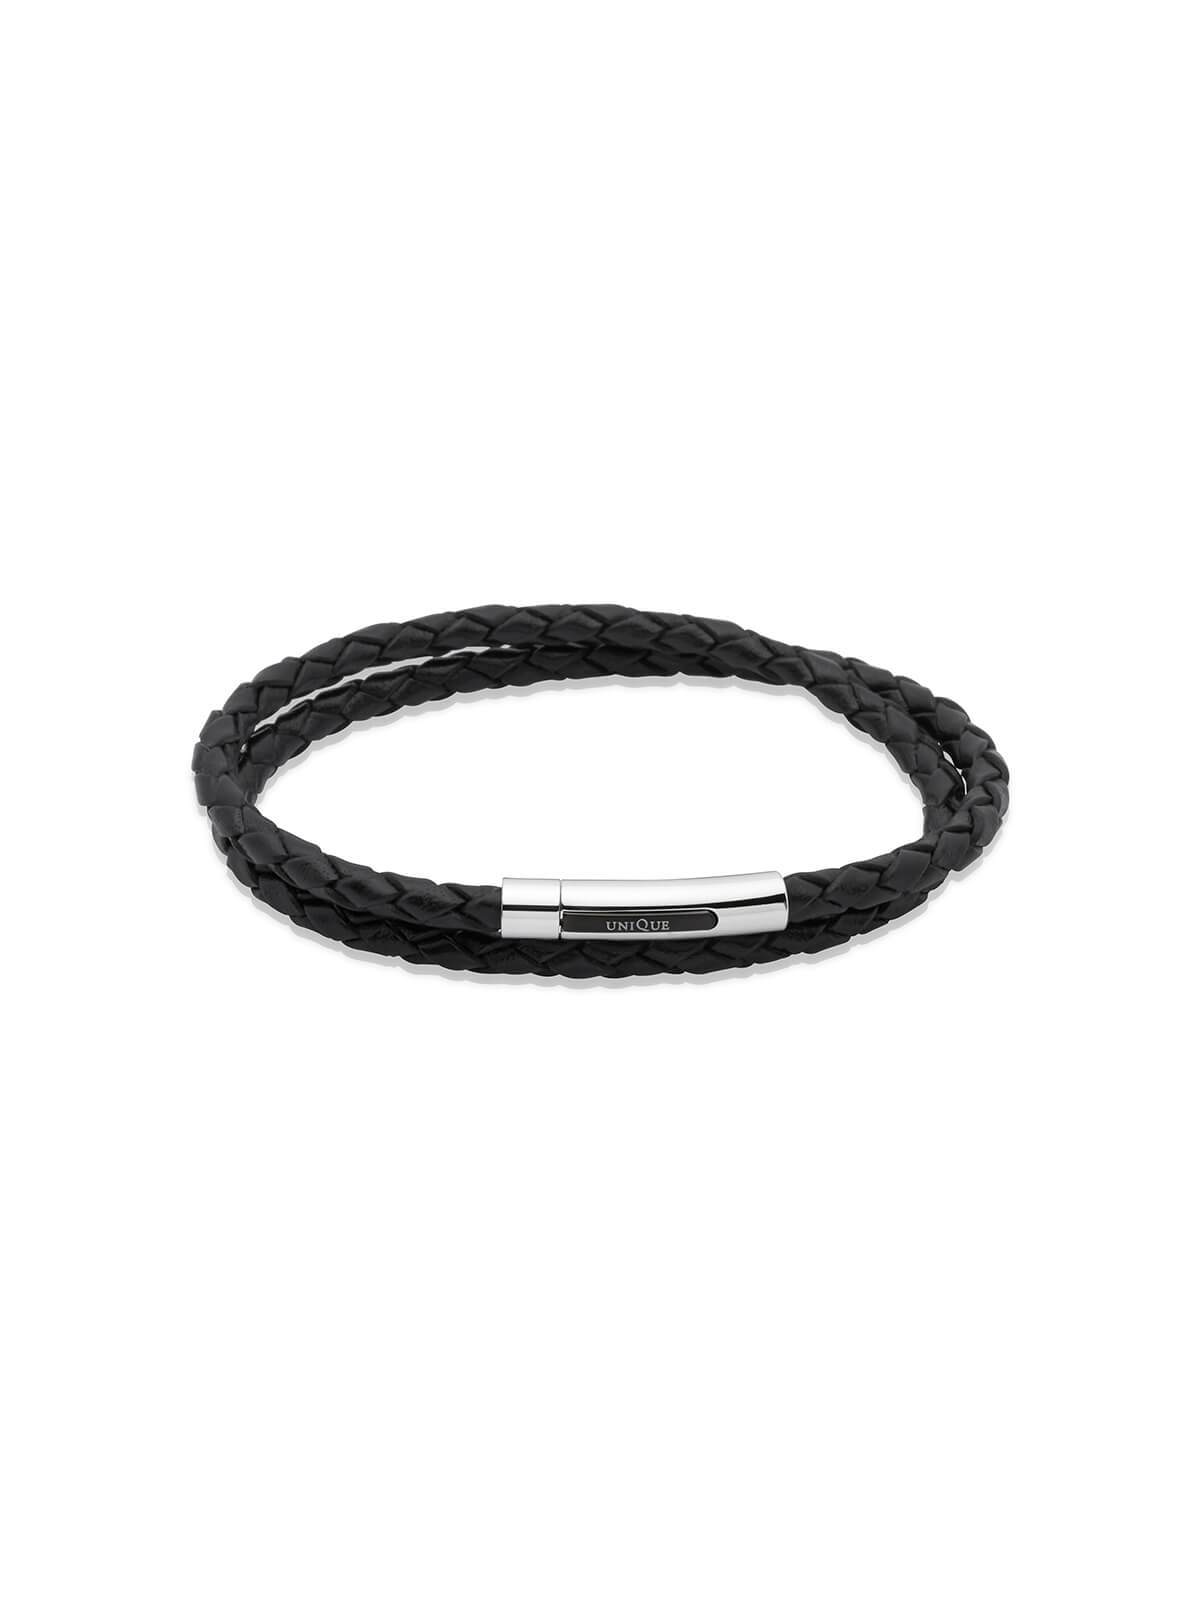 Unique & Co. 21cm Black Leather Double Wrap Bracelet B171BL/21CM